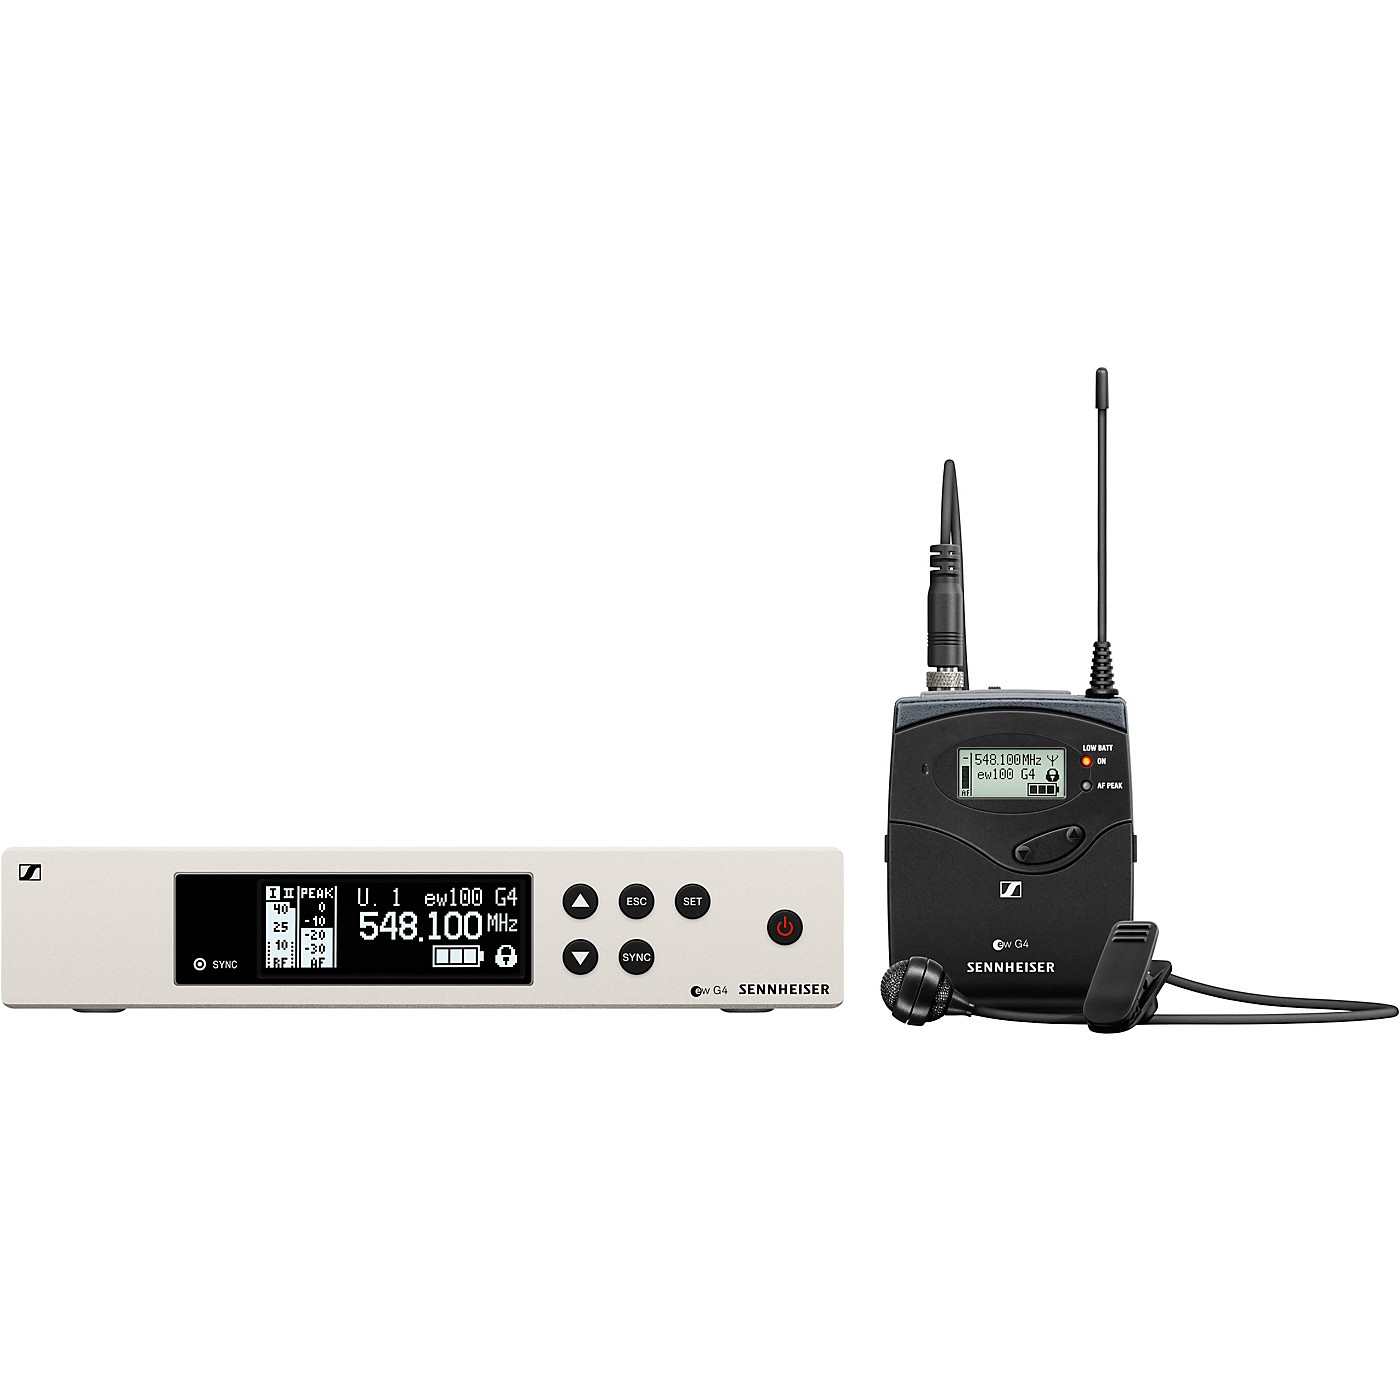 Sennheiser ew 100 G4 Lavalier Wireless System with ME2 Omnidirectional Lavalier Microphone thumbnail